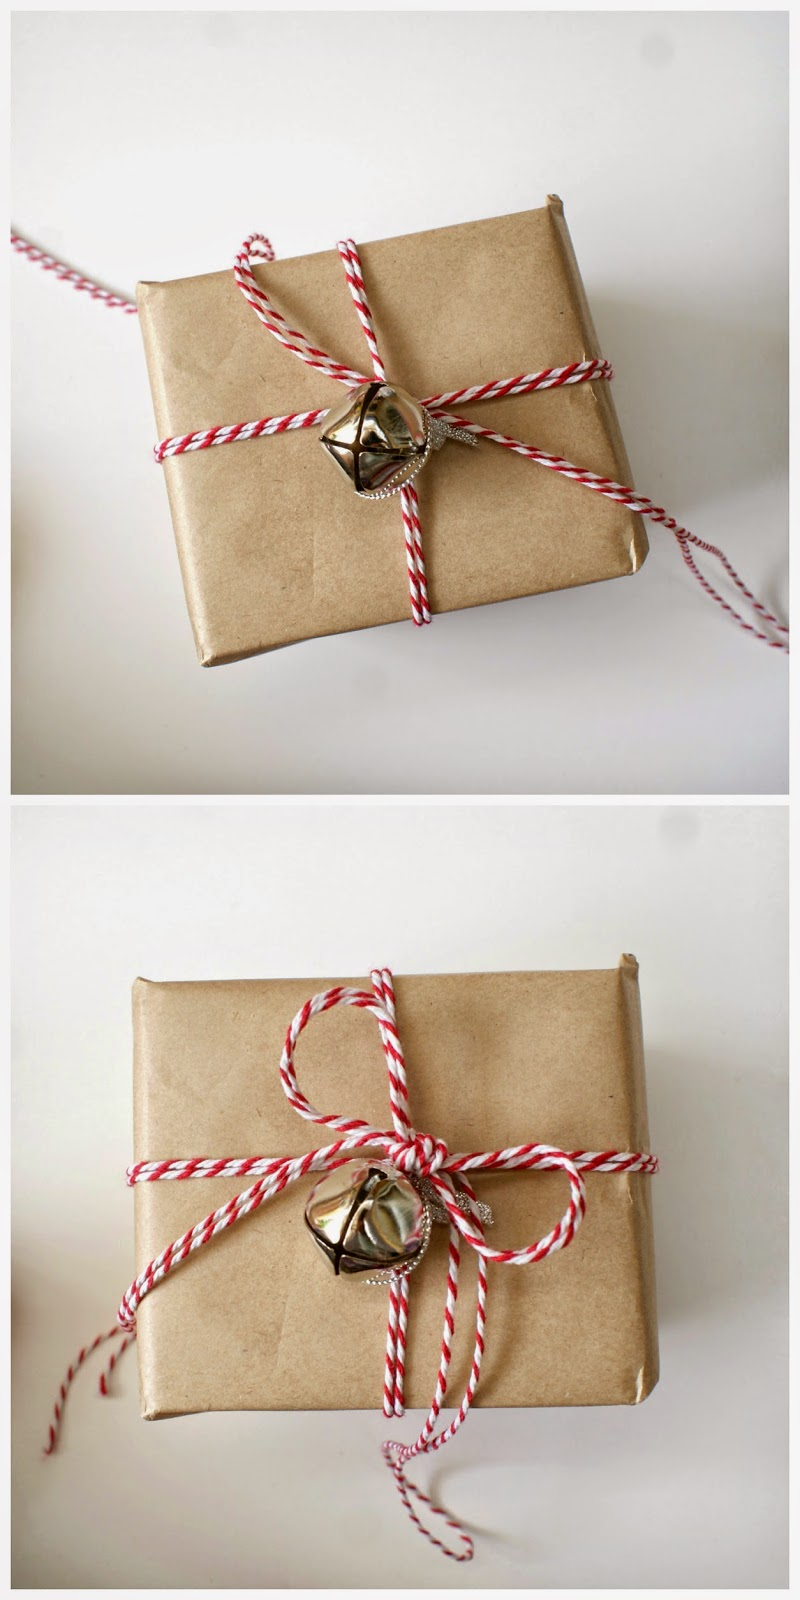 Beautiful Gift Wrapping Ideas on a Budget - Adding Silver Bells and Bakers Twine for a Festive Touch